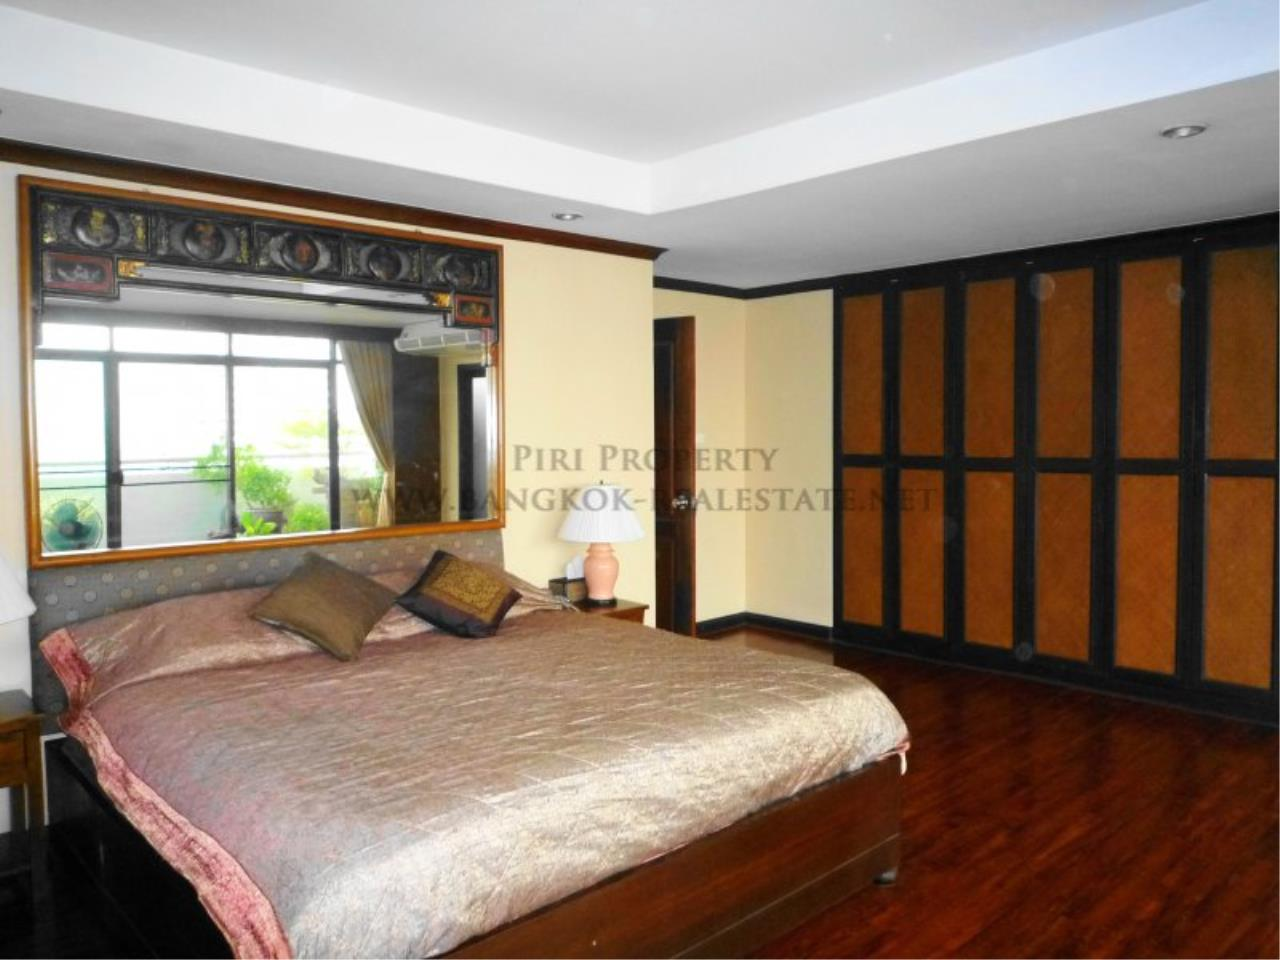 Piri Property Agency's Huge 3 Bed Condo - Waterford Park Thonglor 1